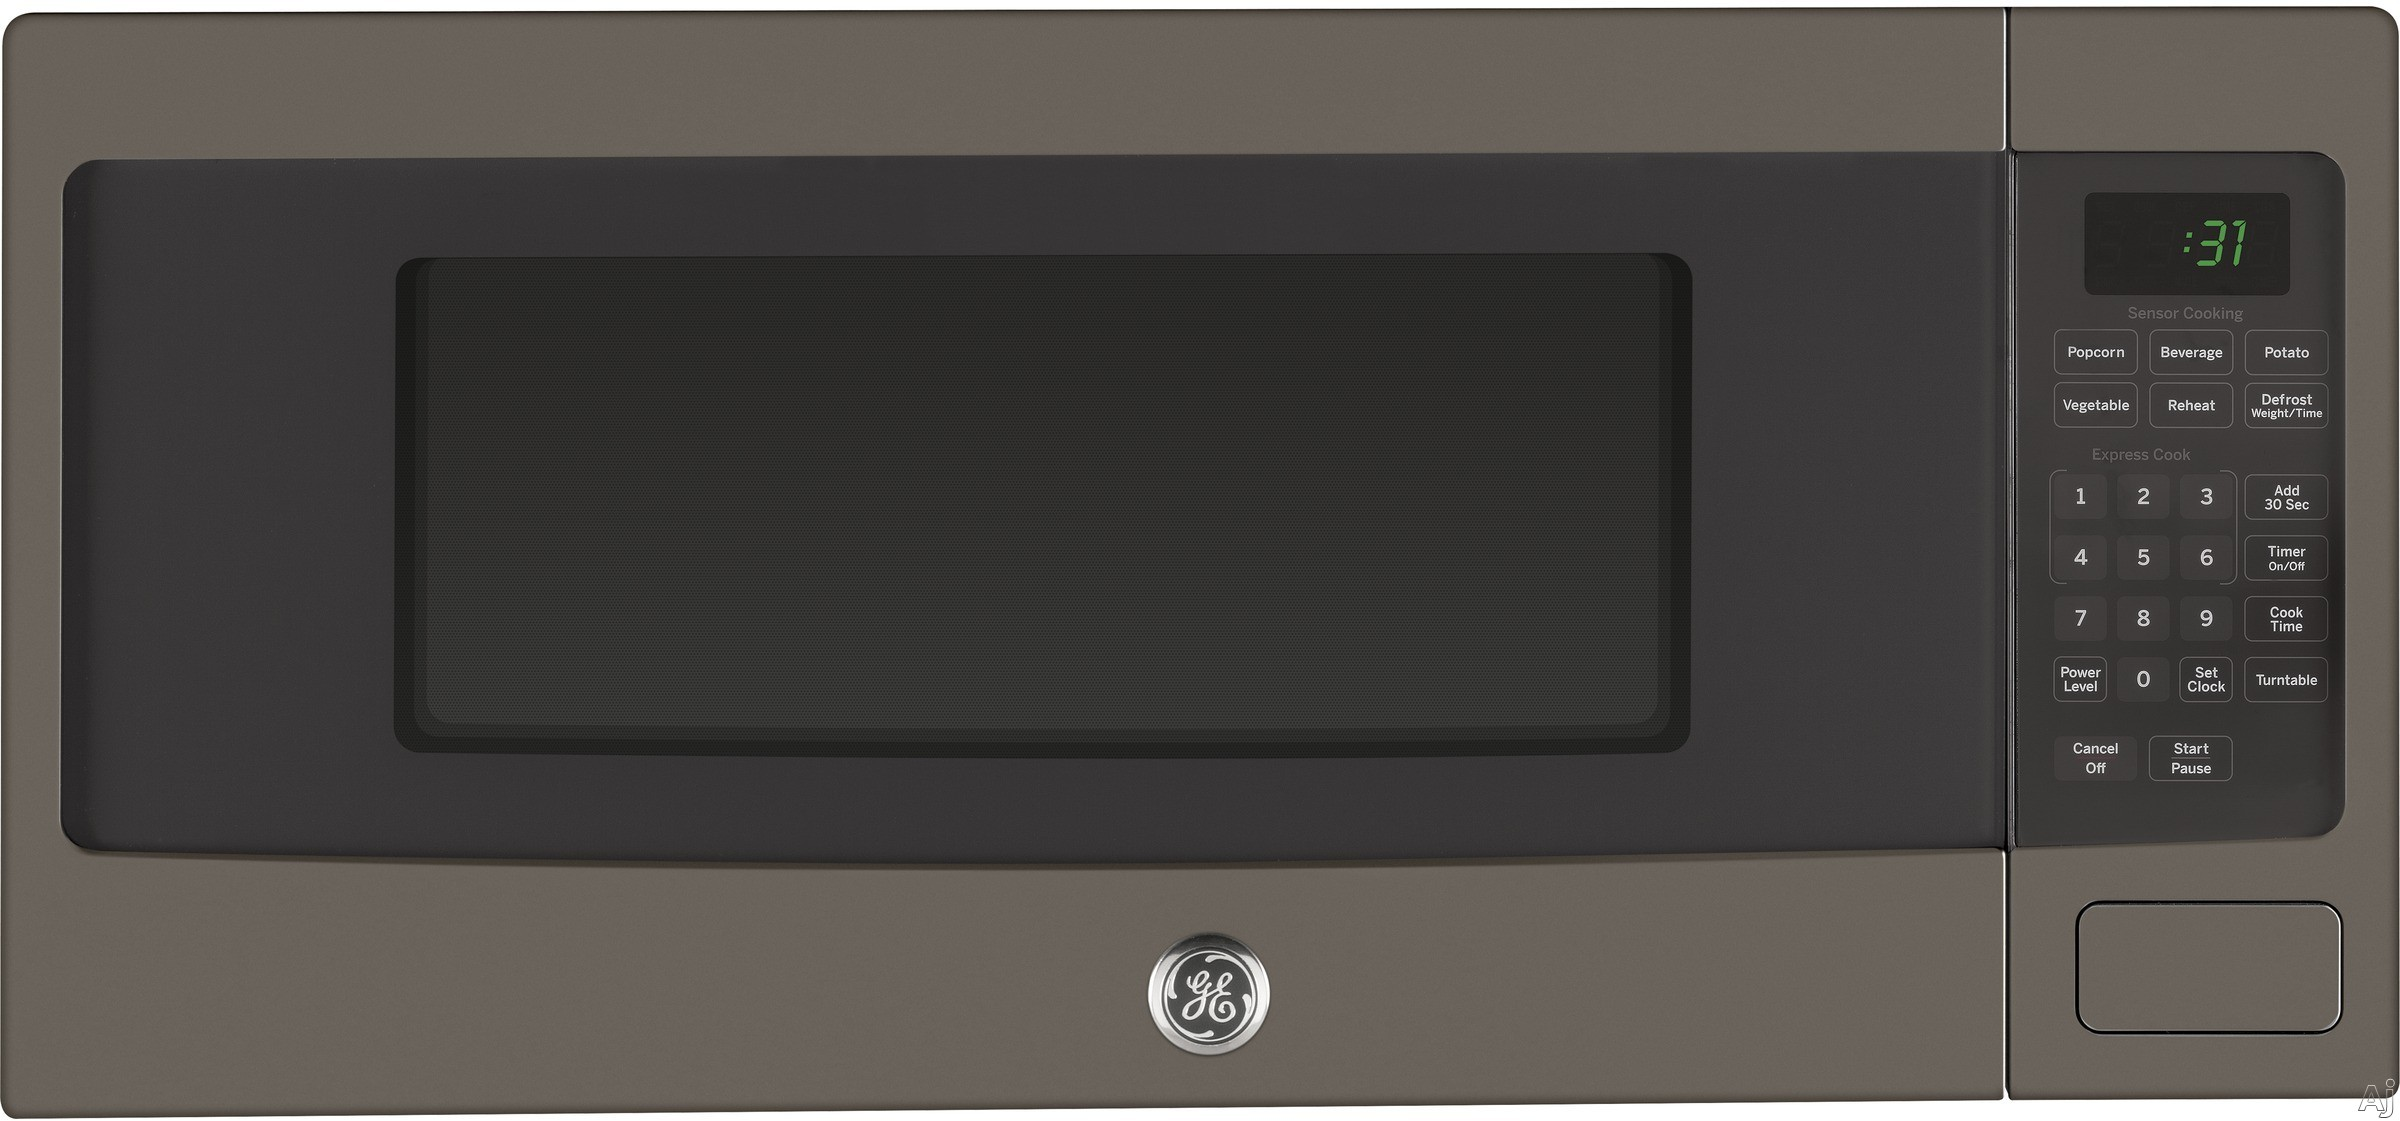 Ge Profile Peb9159 15 Cu Ft Countertop Microwave Oven With